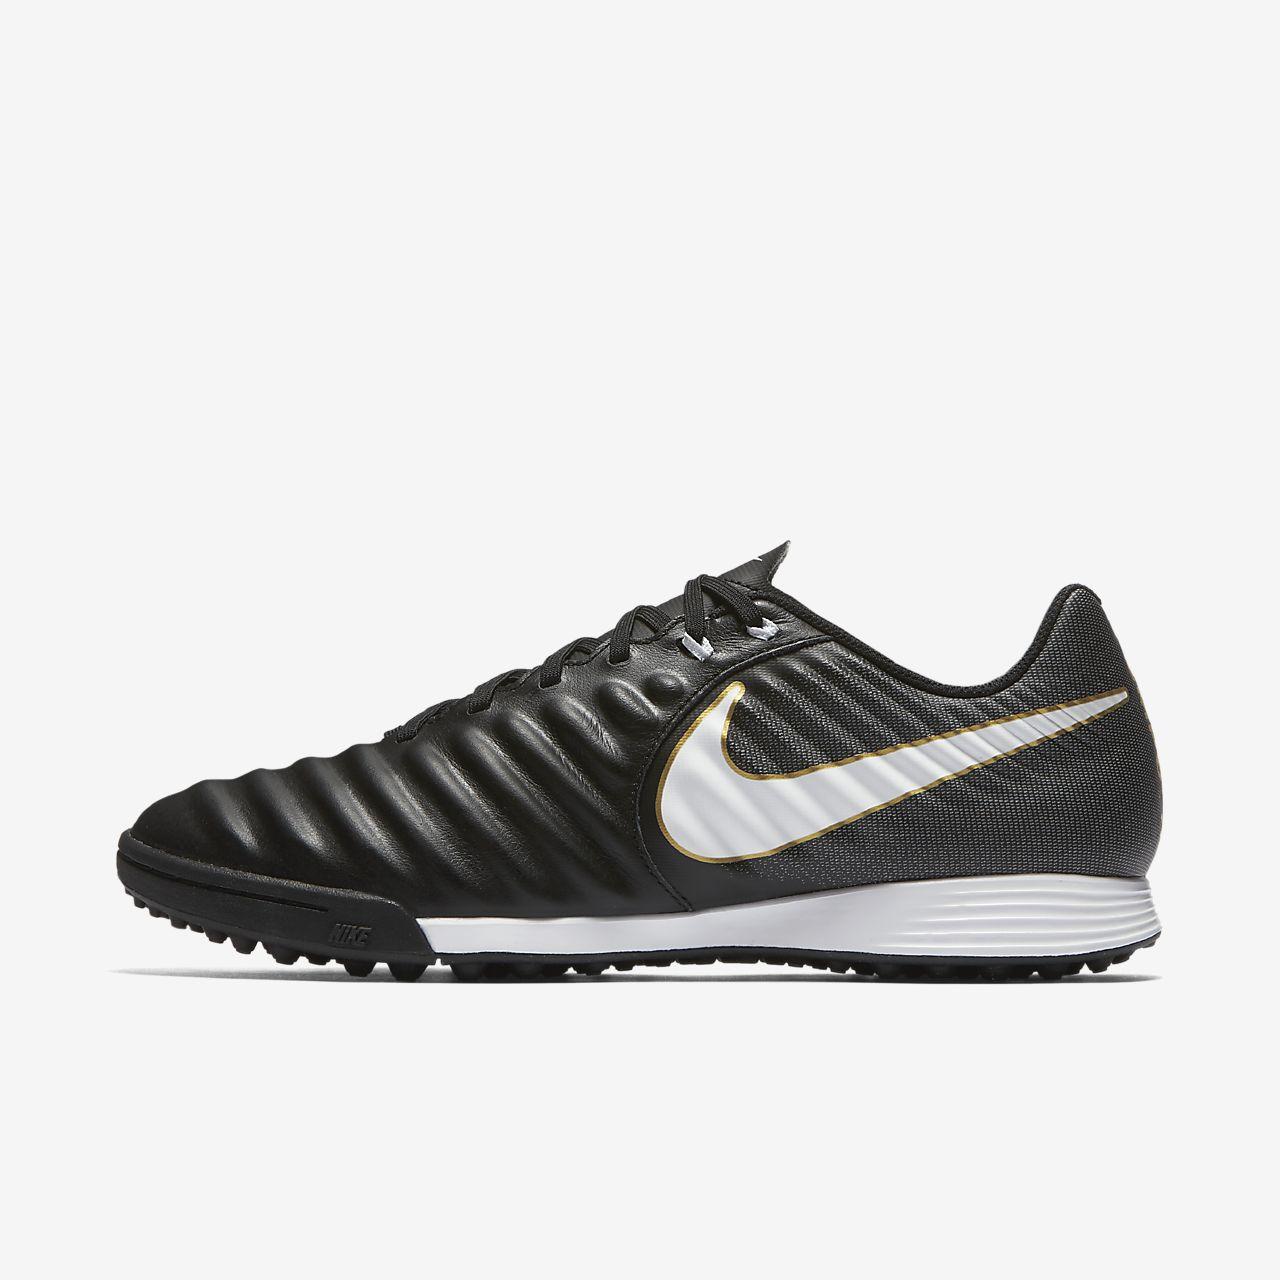 Nike TiempoX Ligera IV Artificial-Turf Women's Football Shoes Black/White tF7362Q